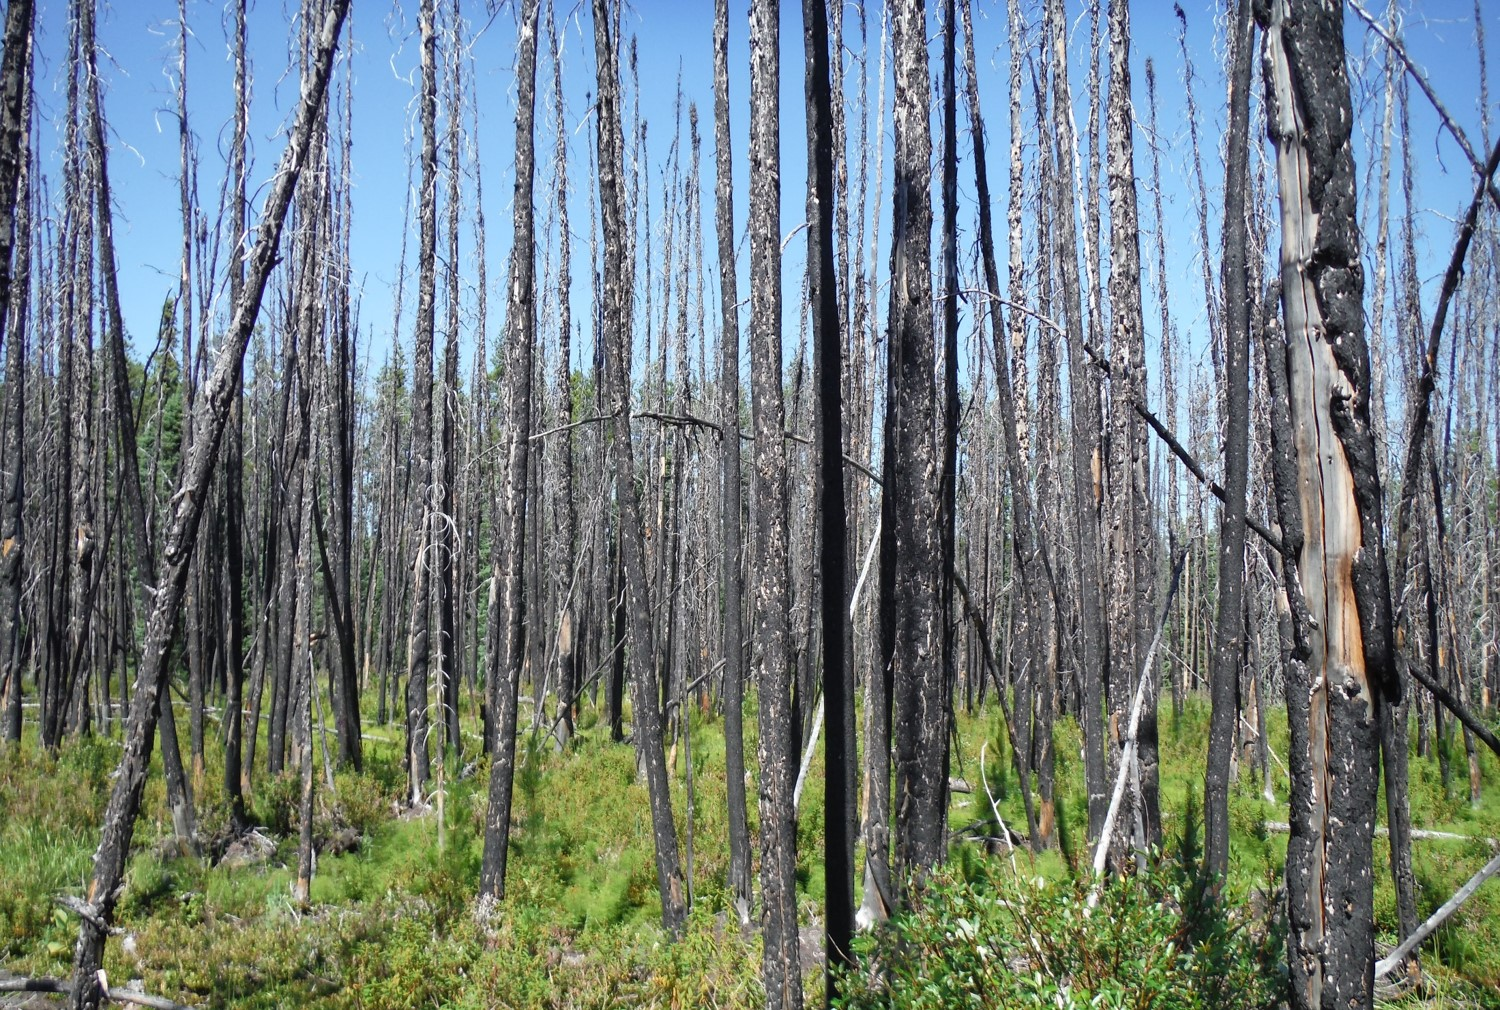 A regrowing burned pine forest